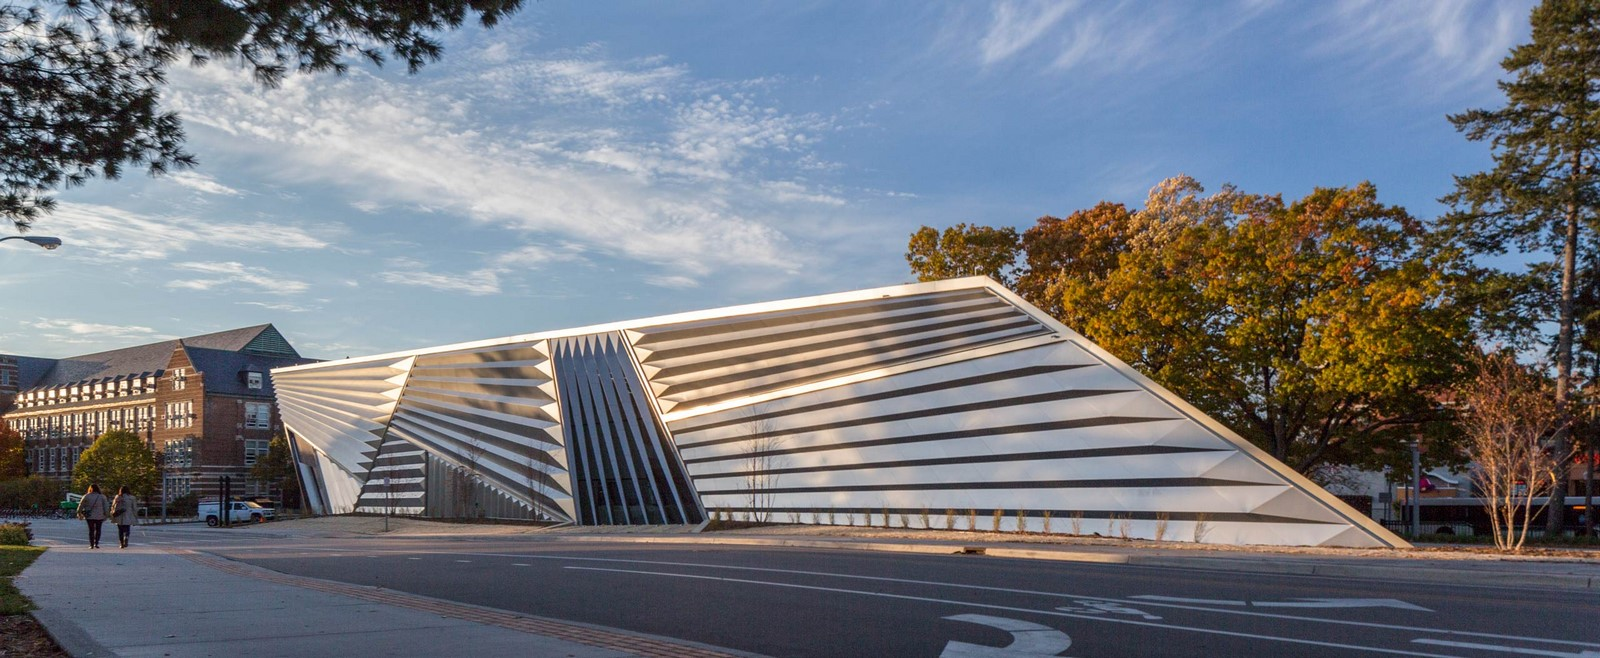 Eli and Edythe Broad Art Museum by Zaha Hadid: Pleated Architecture - Sheet2